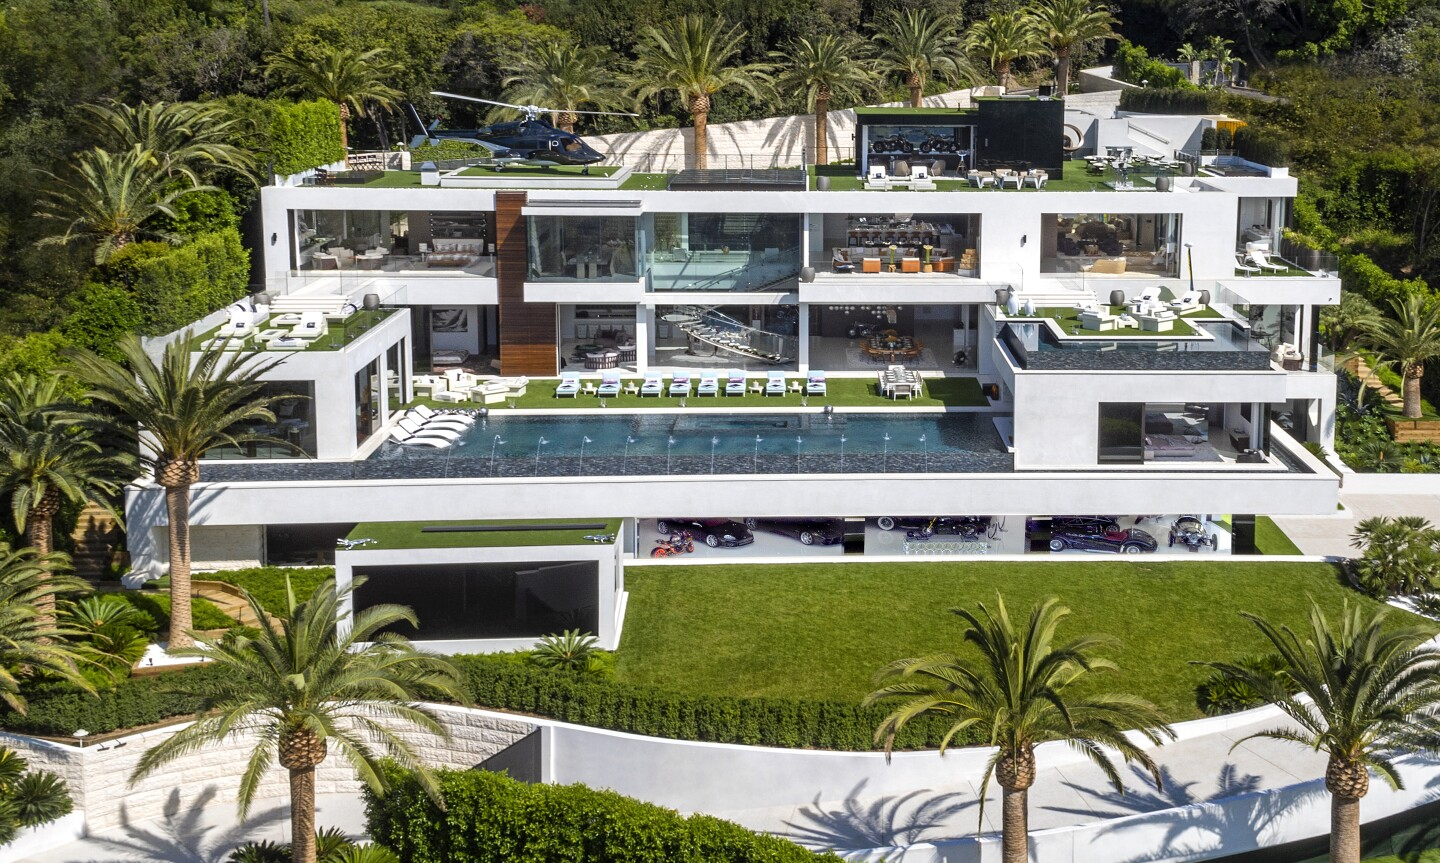 Handbag mogul turned speculative developer Bruce Makowsky sold his latest creation in Bel-Air for $94 million, down considerably from the original asking price of $250 million. The 38,000-square-foot house sits on more than an acre and features three kitchens, a 40-seat movie theater and a bowling alley. A decommissioned helicopter serves as decoration on the rooftop deck.